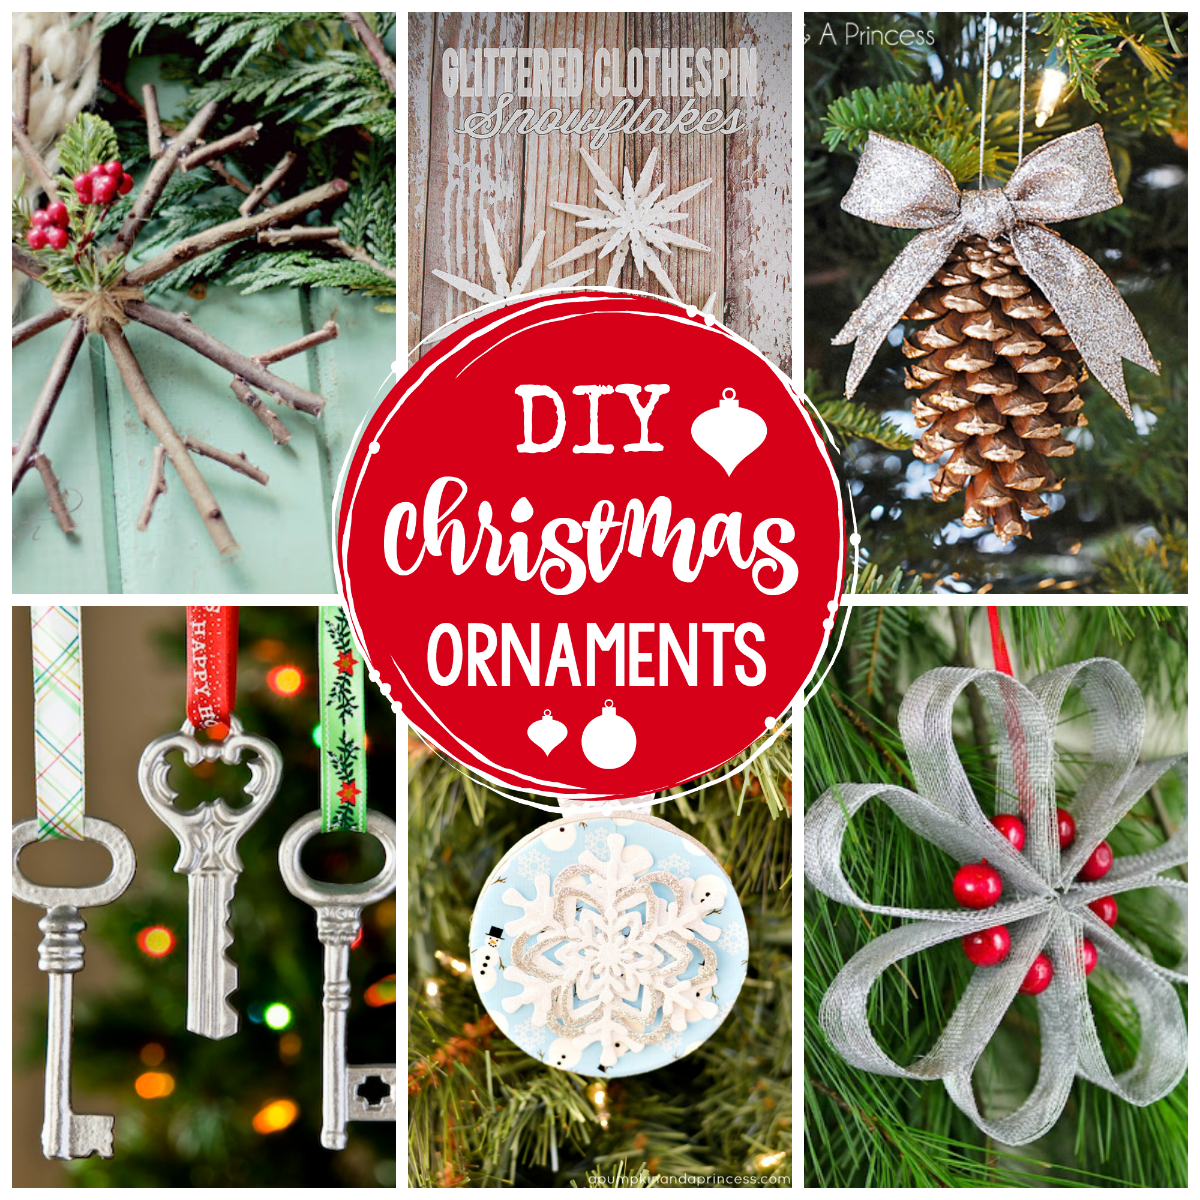 Pinecone 25 Diy Christmas Ornaments To Make This Year Crazy